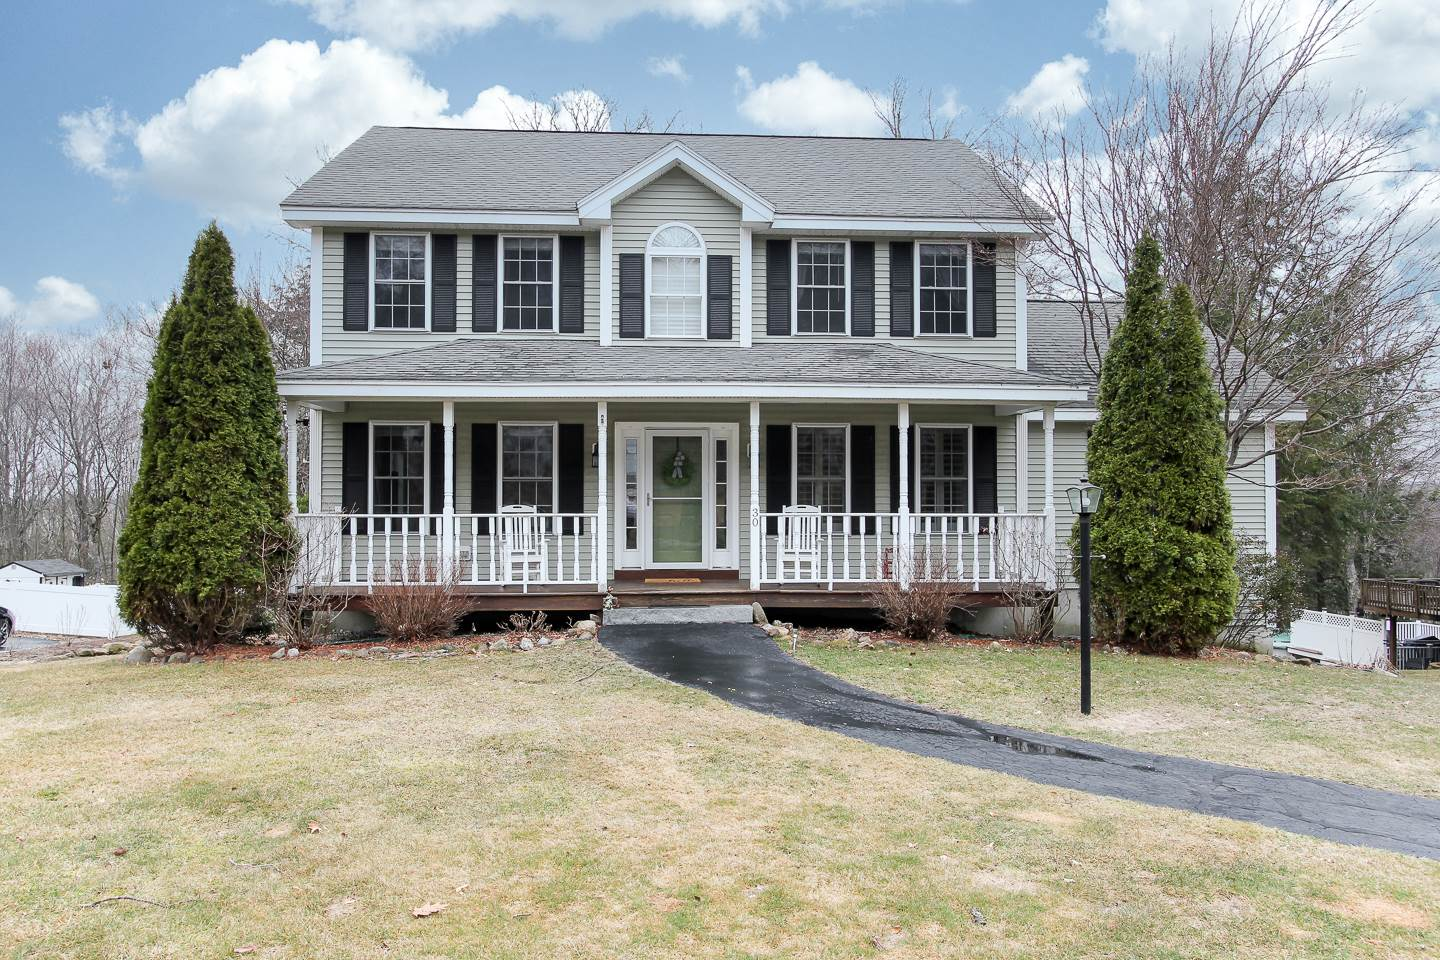 Photo of 30 Tyler Drive Goffstown NH 03045